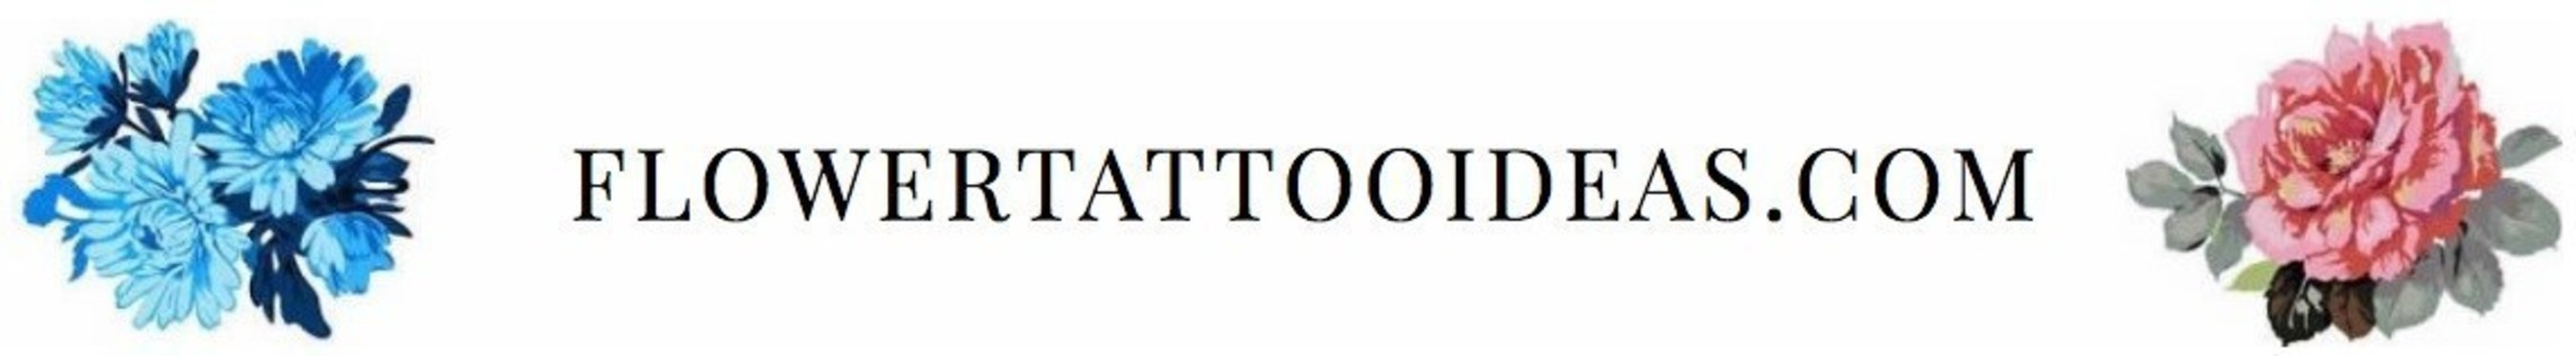 Flower Tattoo Ideas Website, a Site that Features Dozens of Beautiful Photos of Flower Tattoos, is Launched